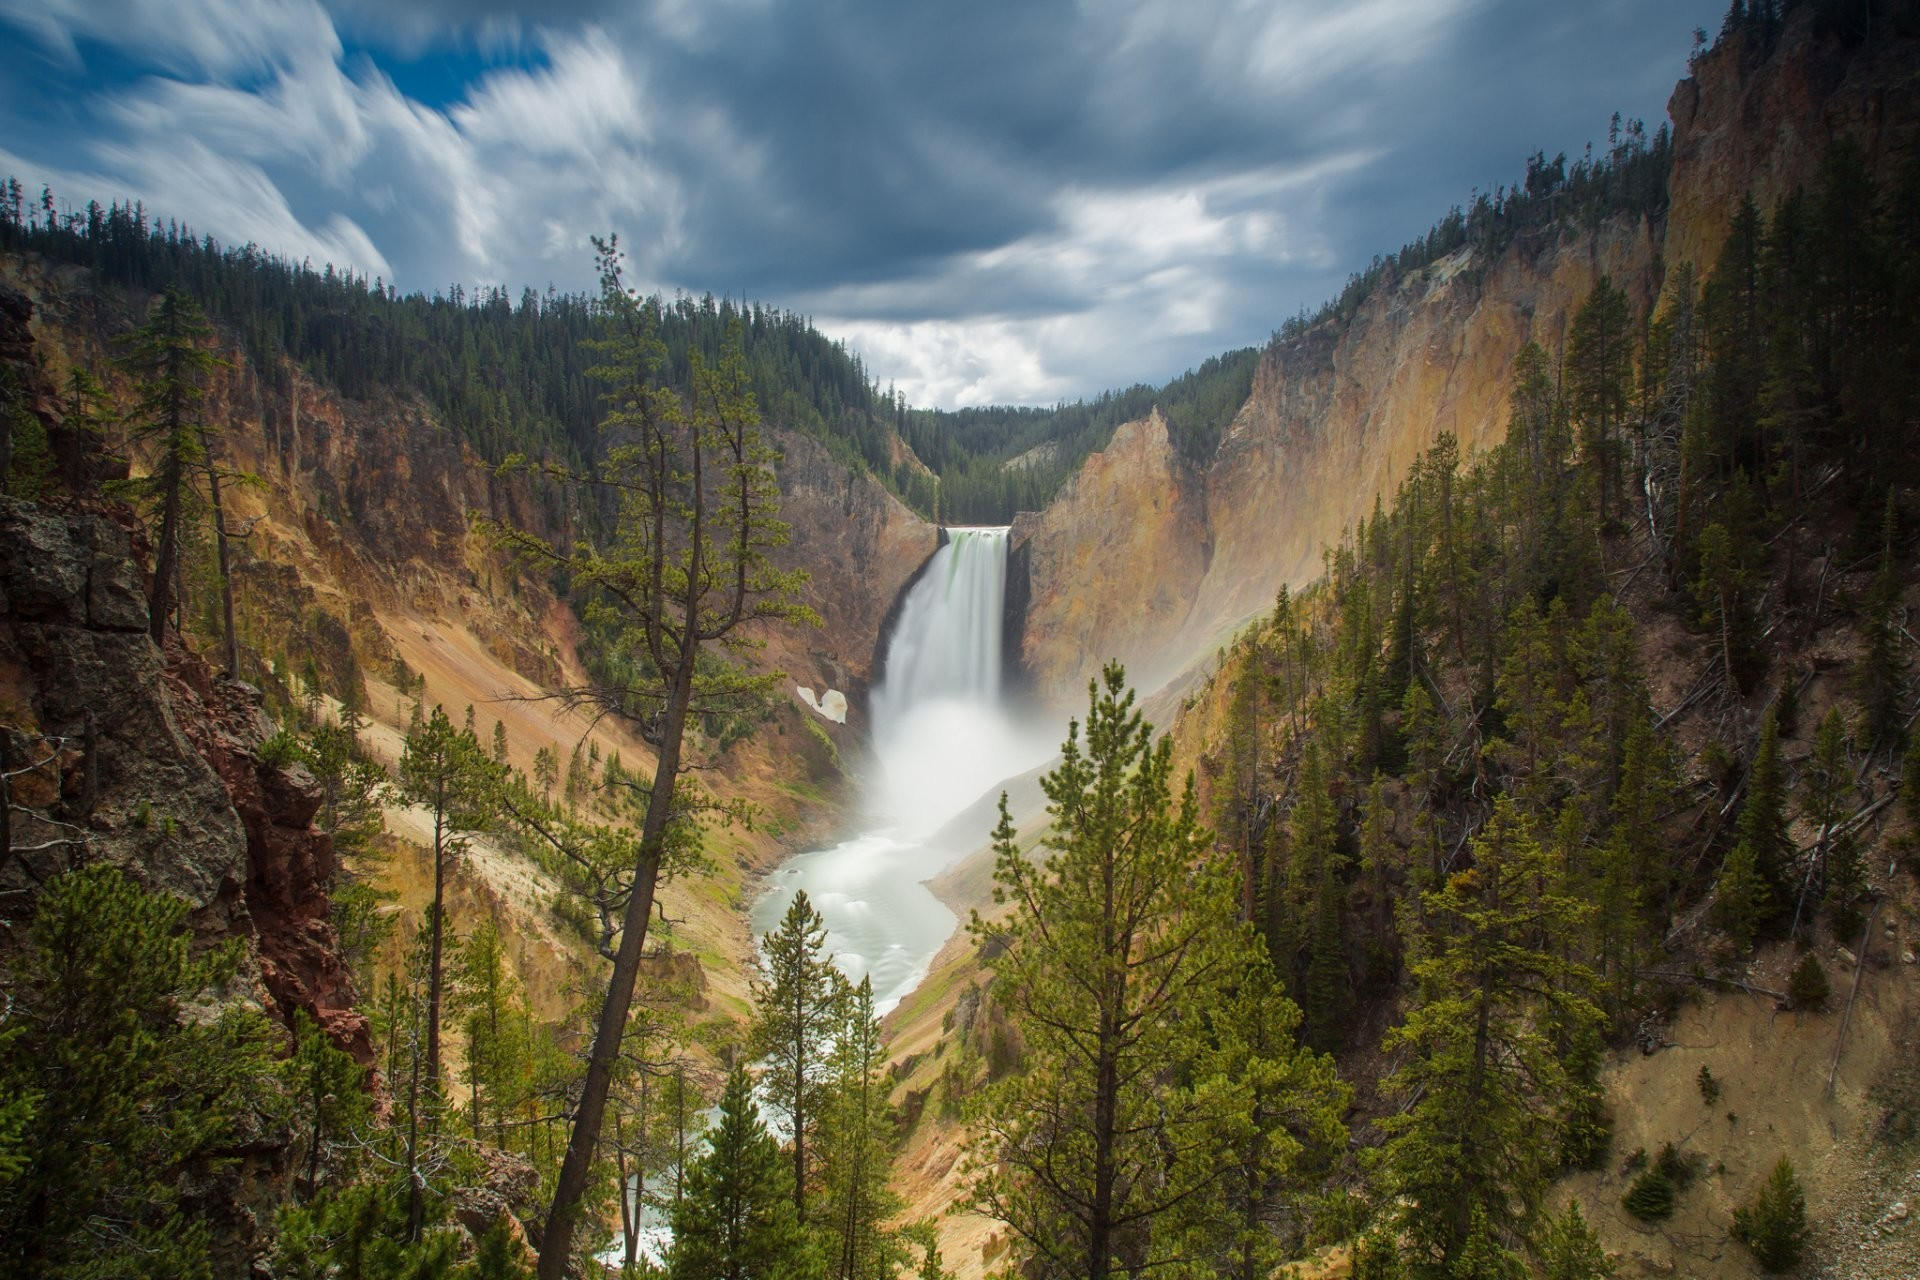 1920x1280 canyon junction wyoming usa lower falls yellowstone national park waterfall  rock forest HD wallpaper